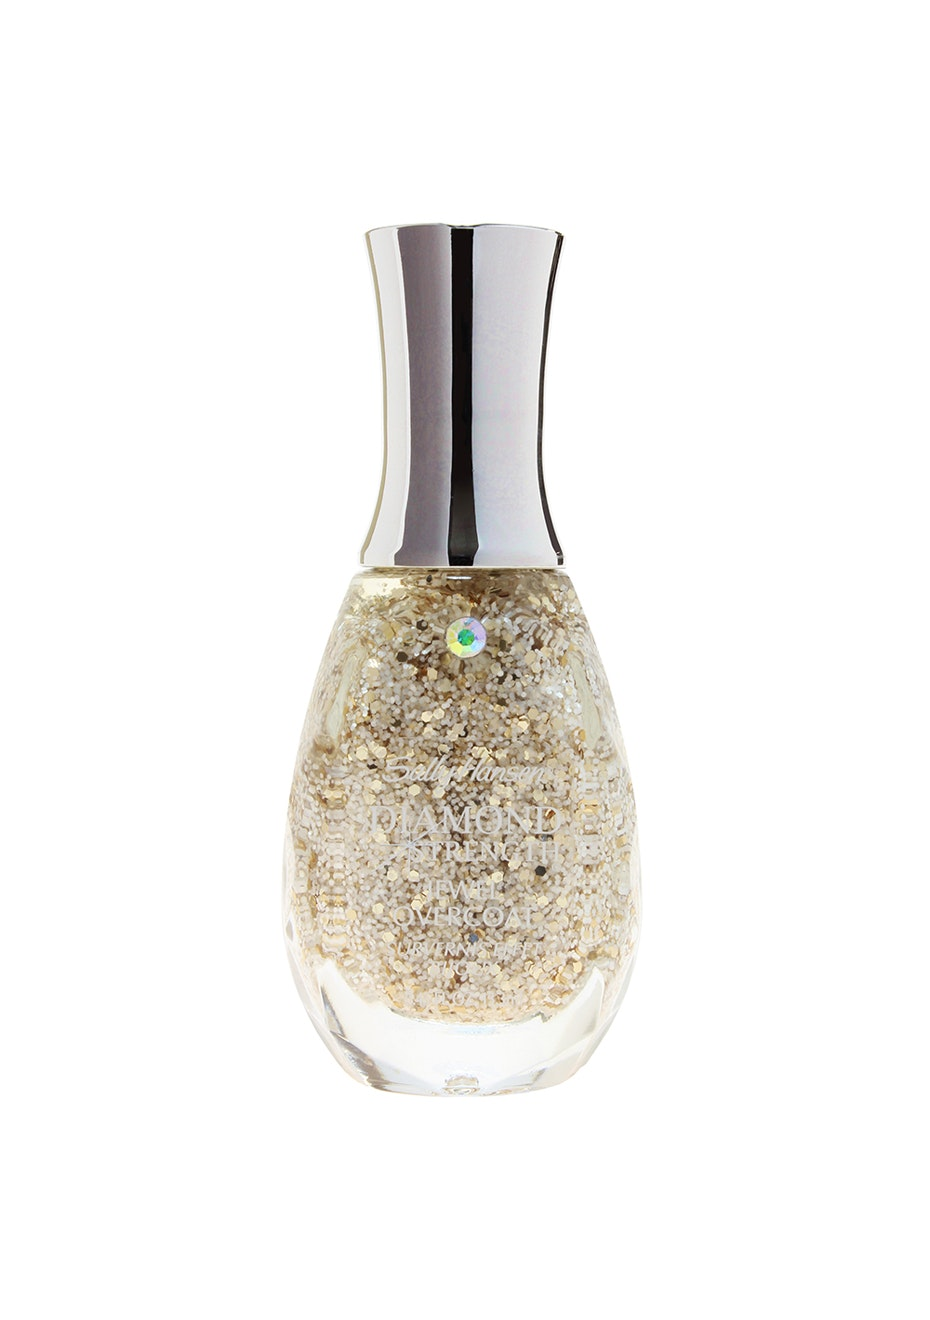 Sally Hansen Diamond Strength Nail Color #507 WHITE VEIL